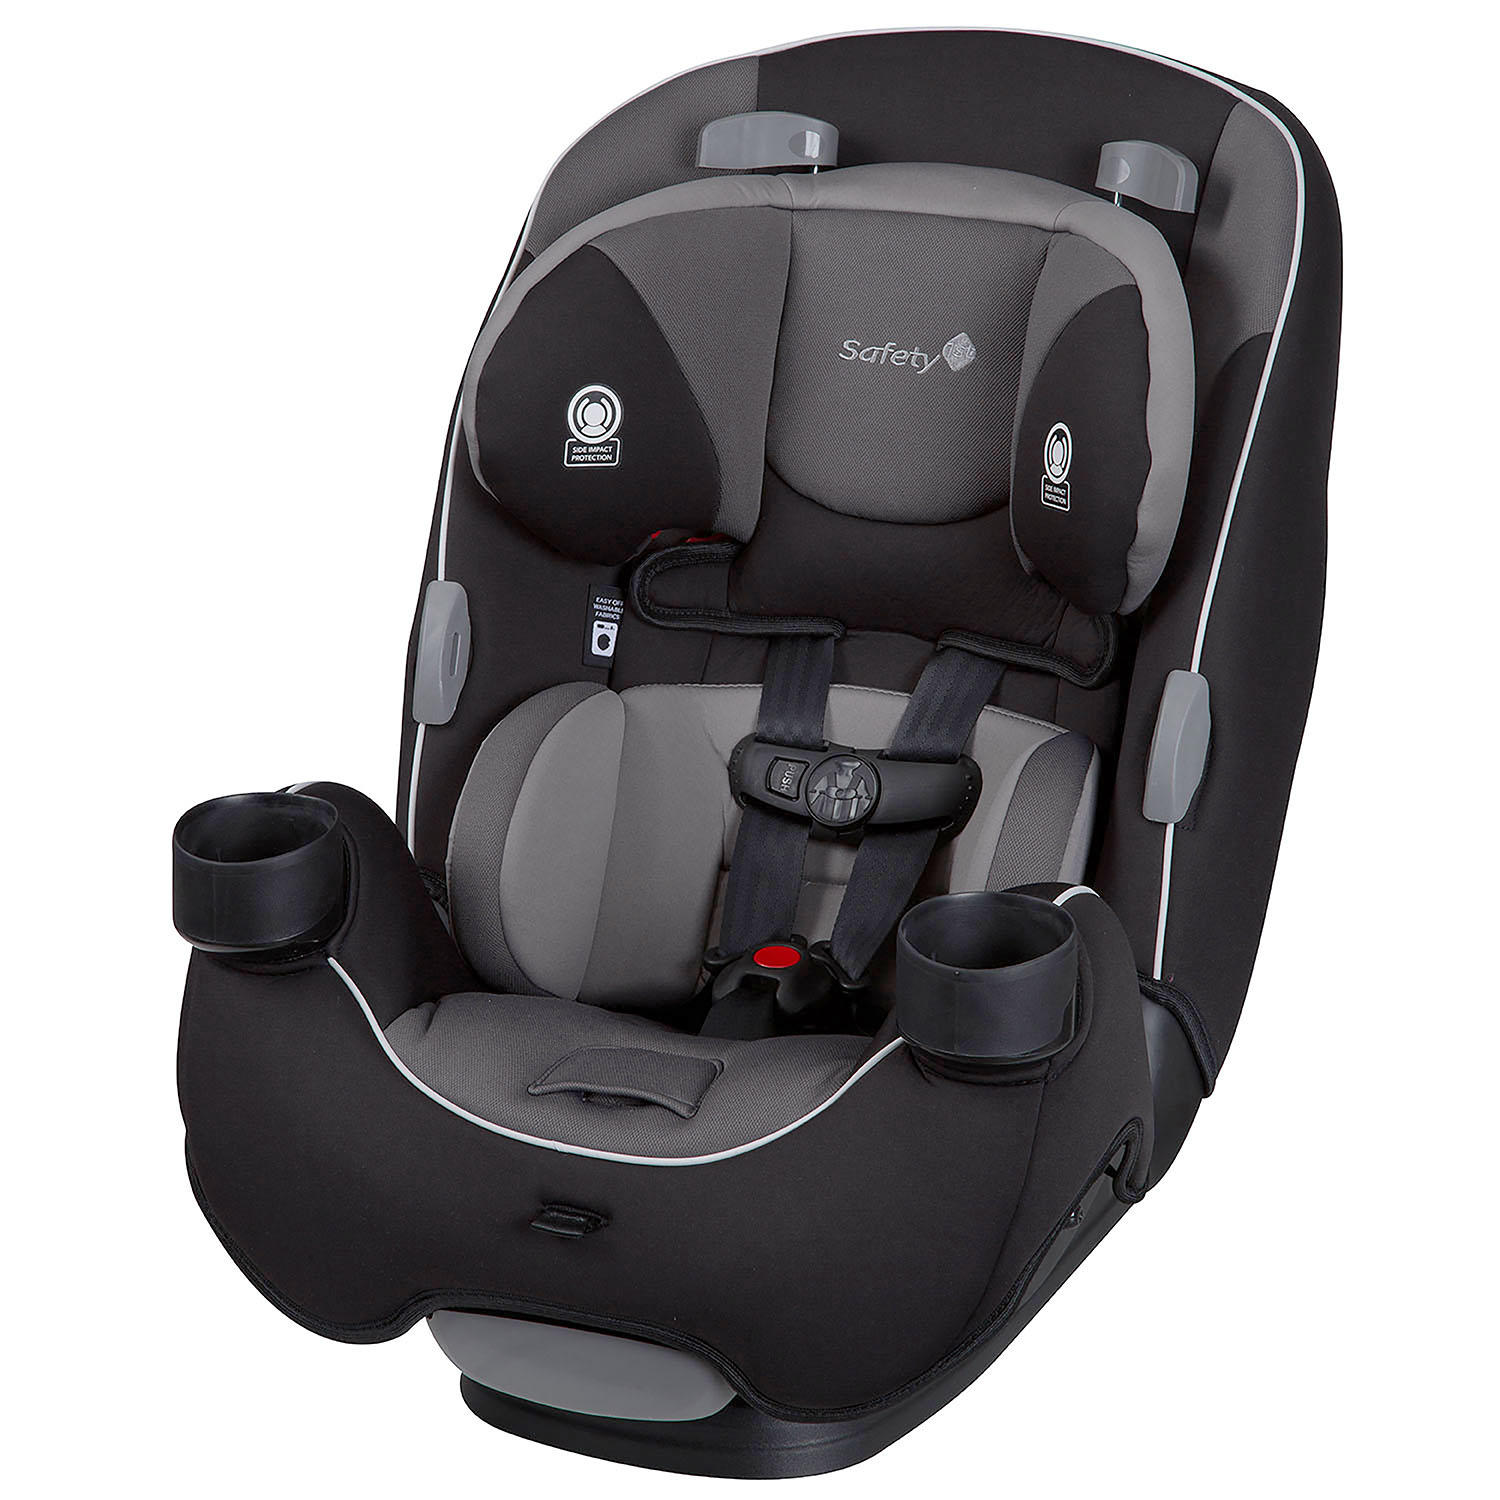 $99.86 – Safety 1st EverFit 3-in-1 Convertible Car Seat